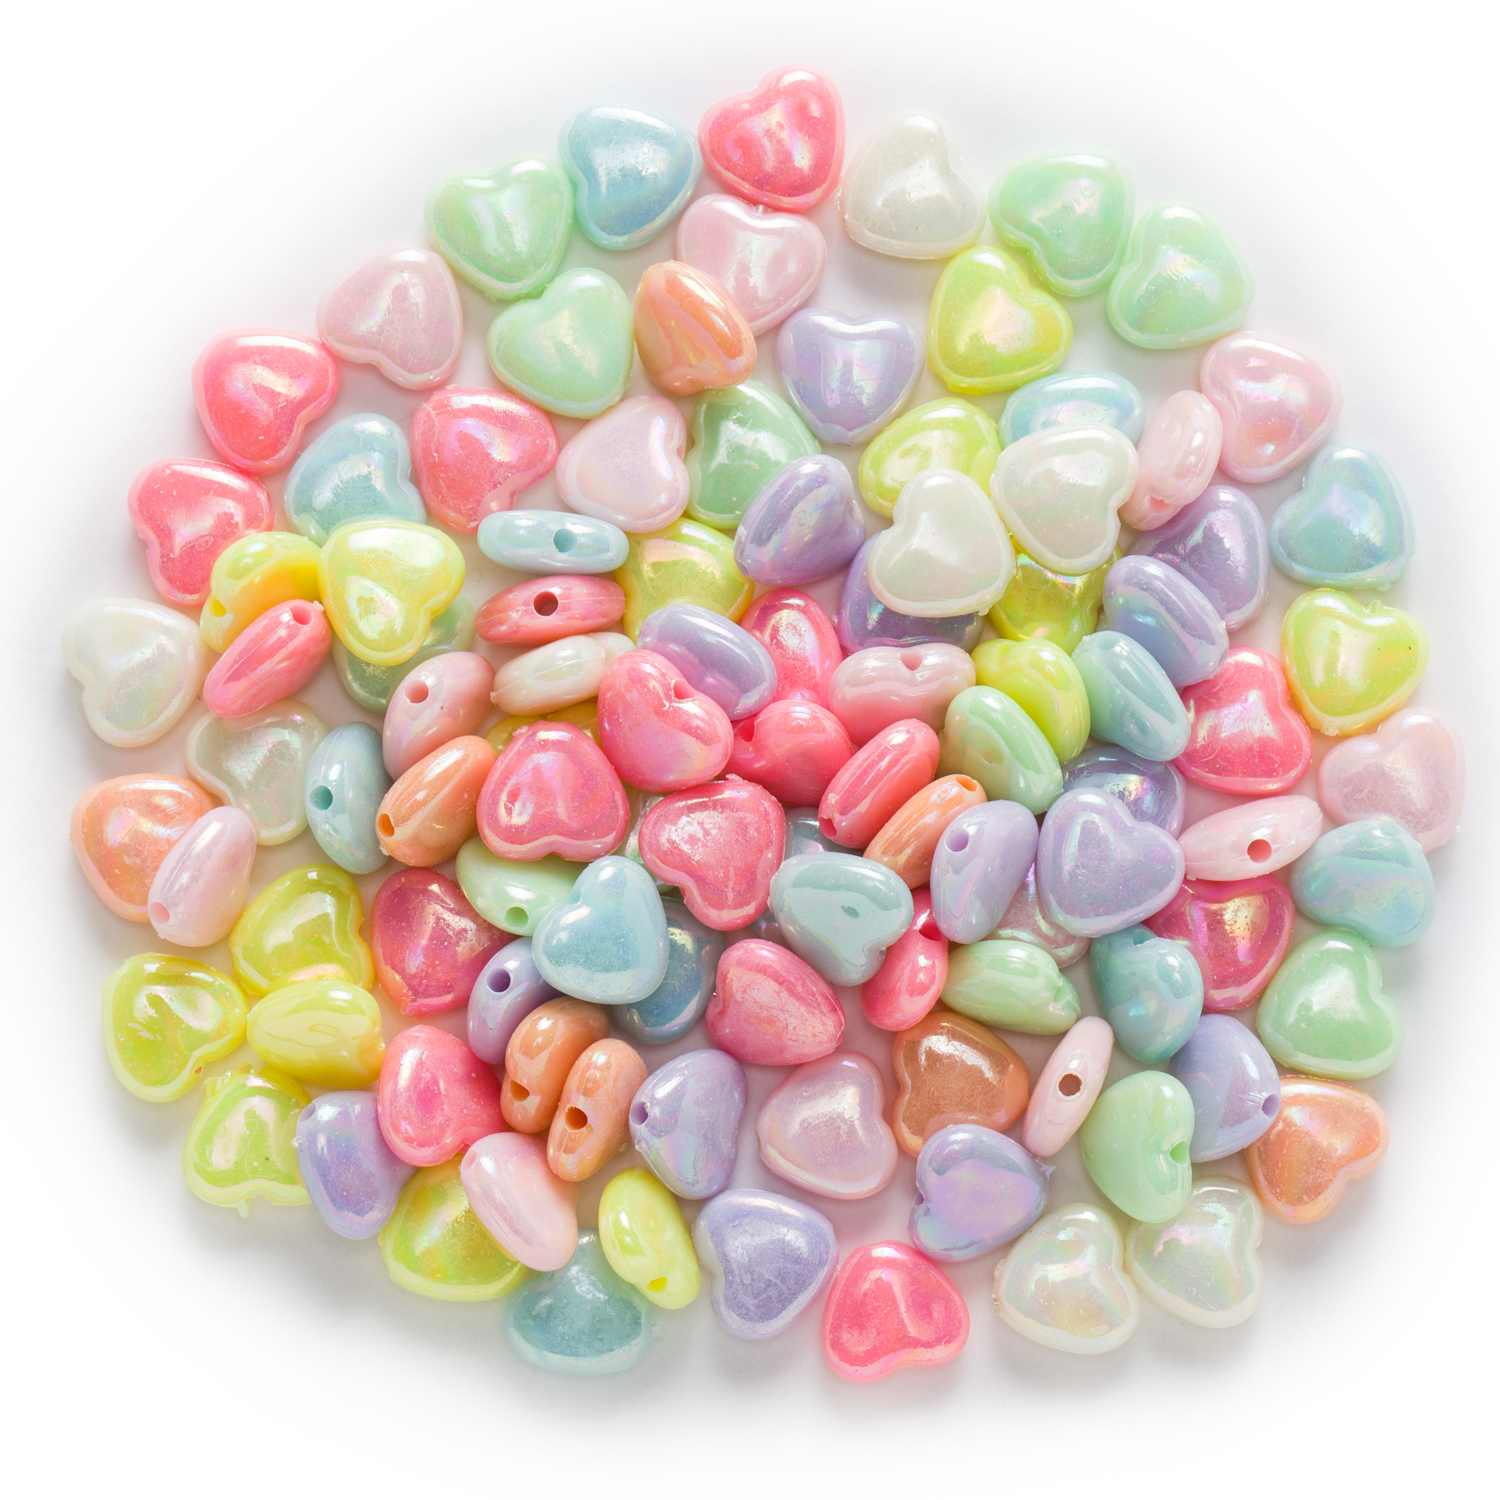 25Pcs Mixed Acrylic Plastic Letters Heart Spacer Beads Charms 12mm